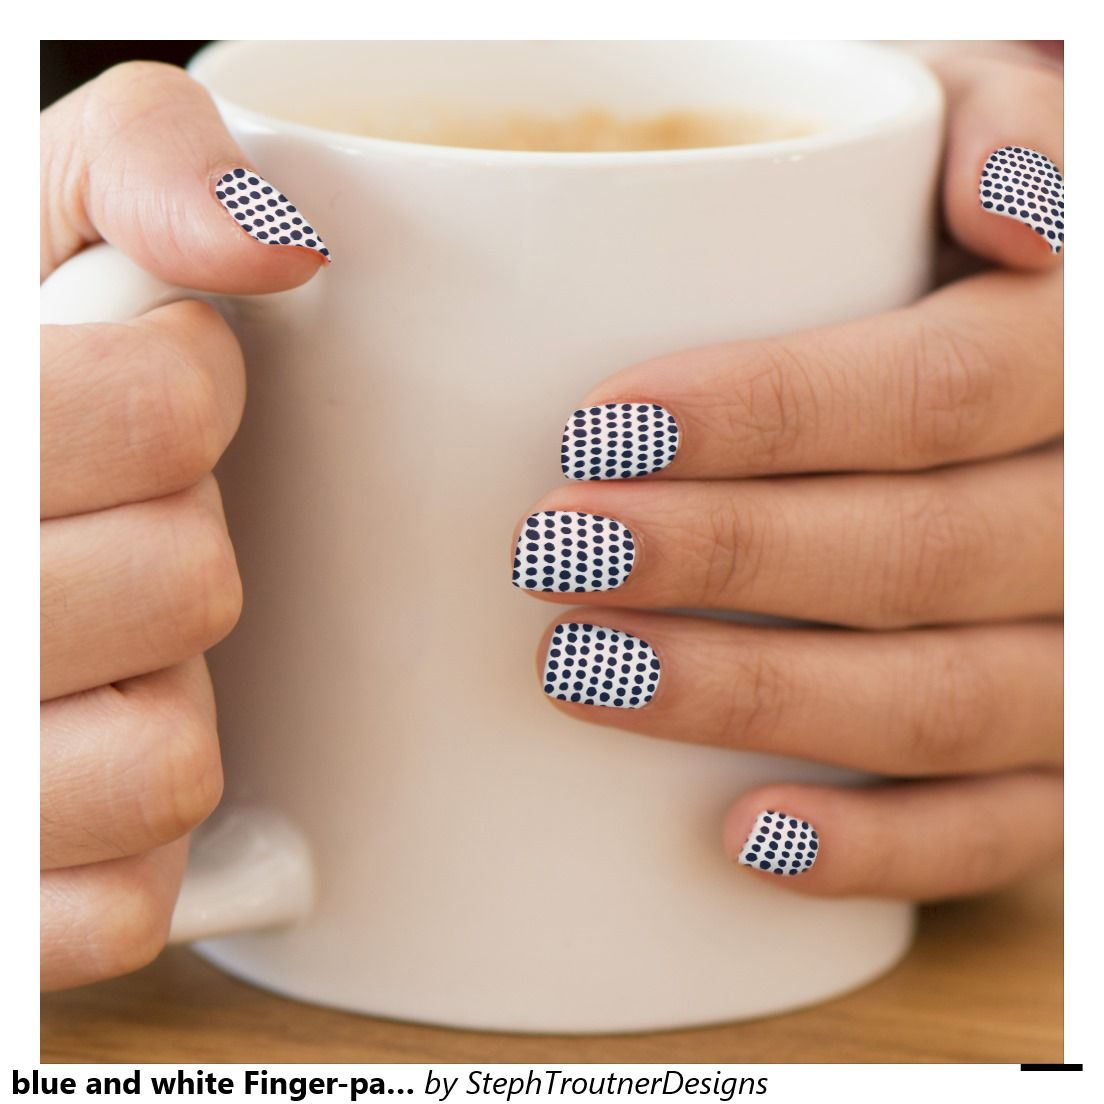 blue and white Finger-painted Polka Dots Minx® Nail Wraps